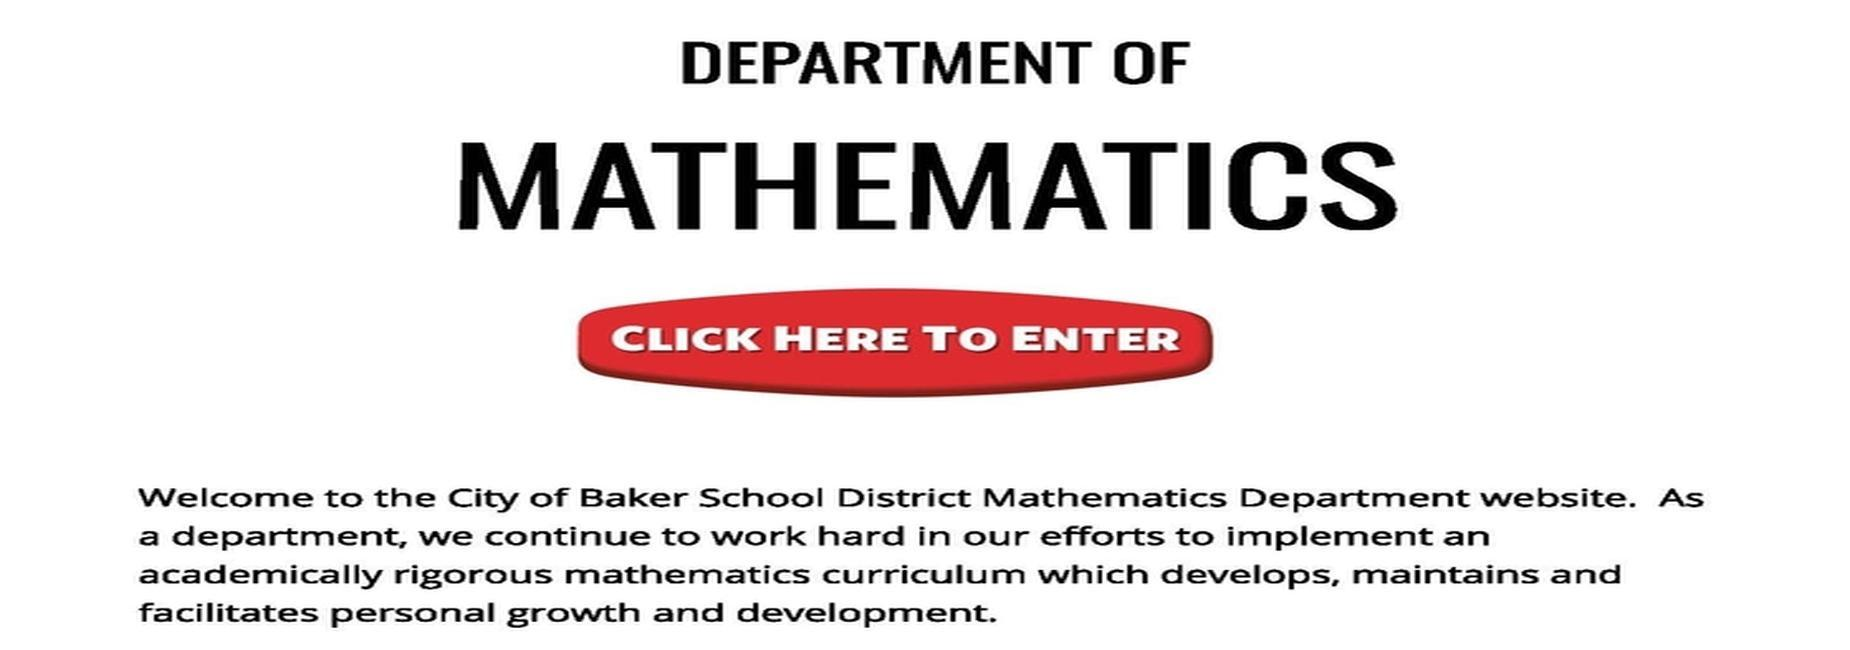 a graphic that advertises the City of Baker School System Department of Mathematics